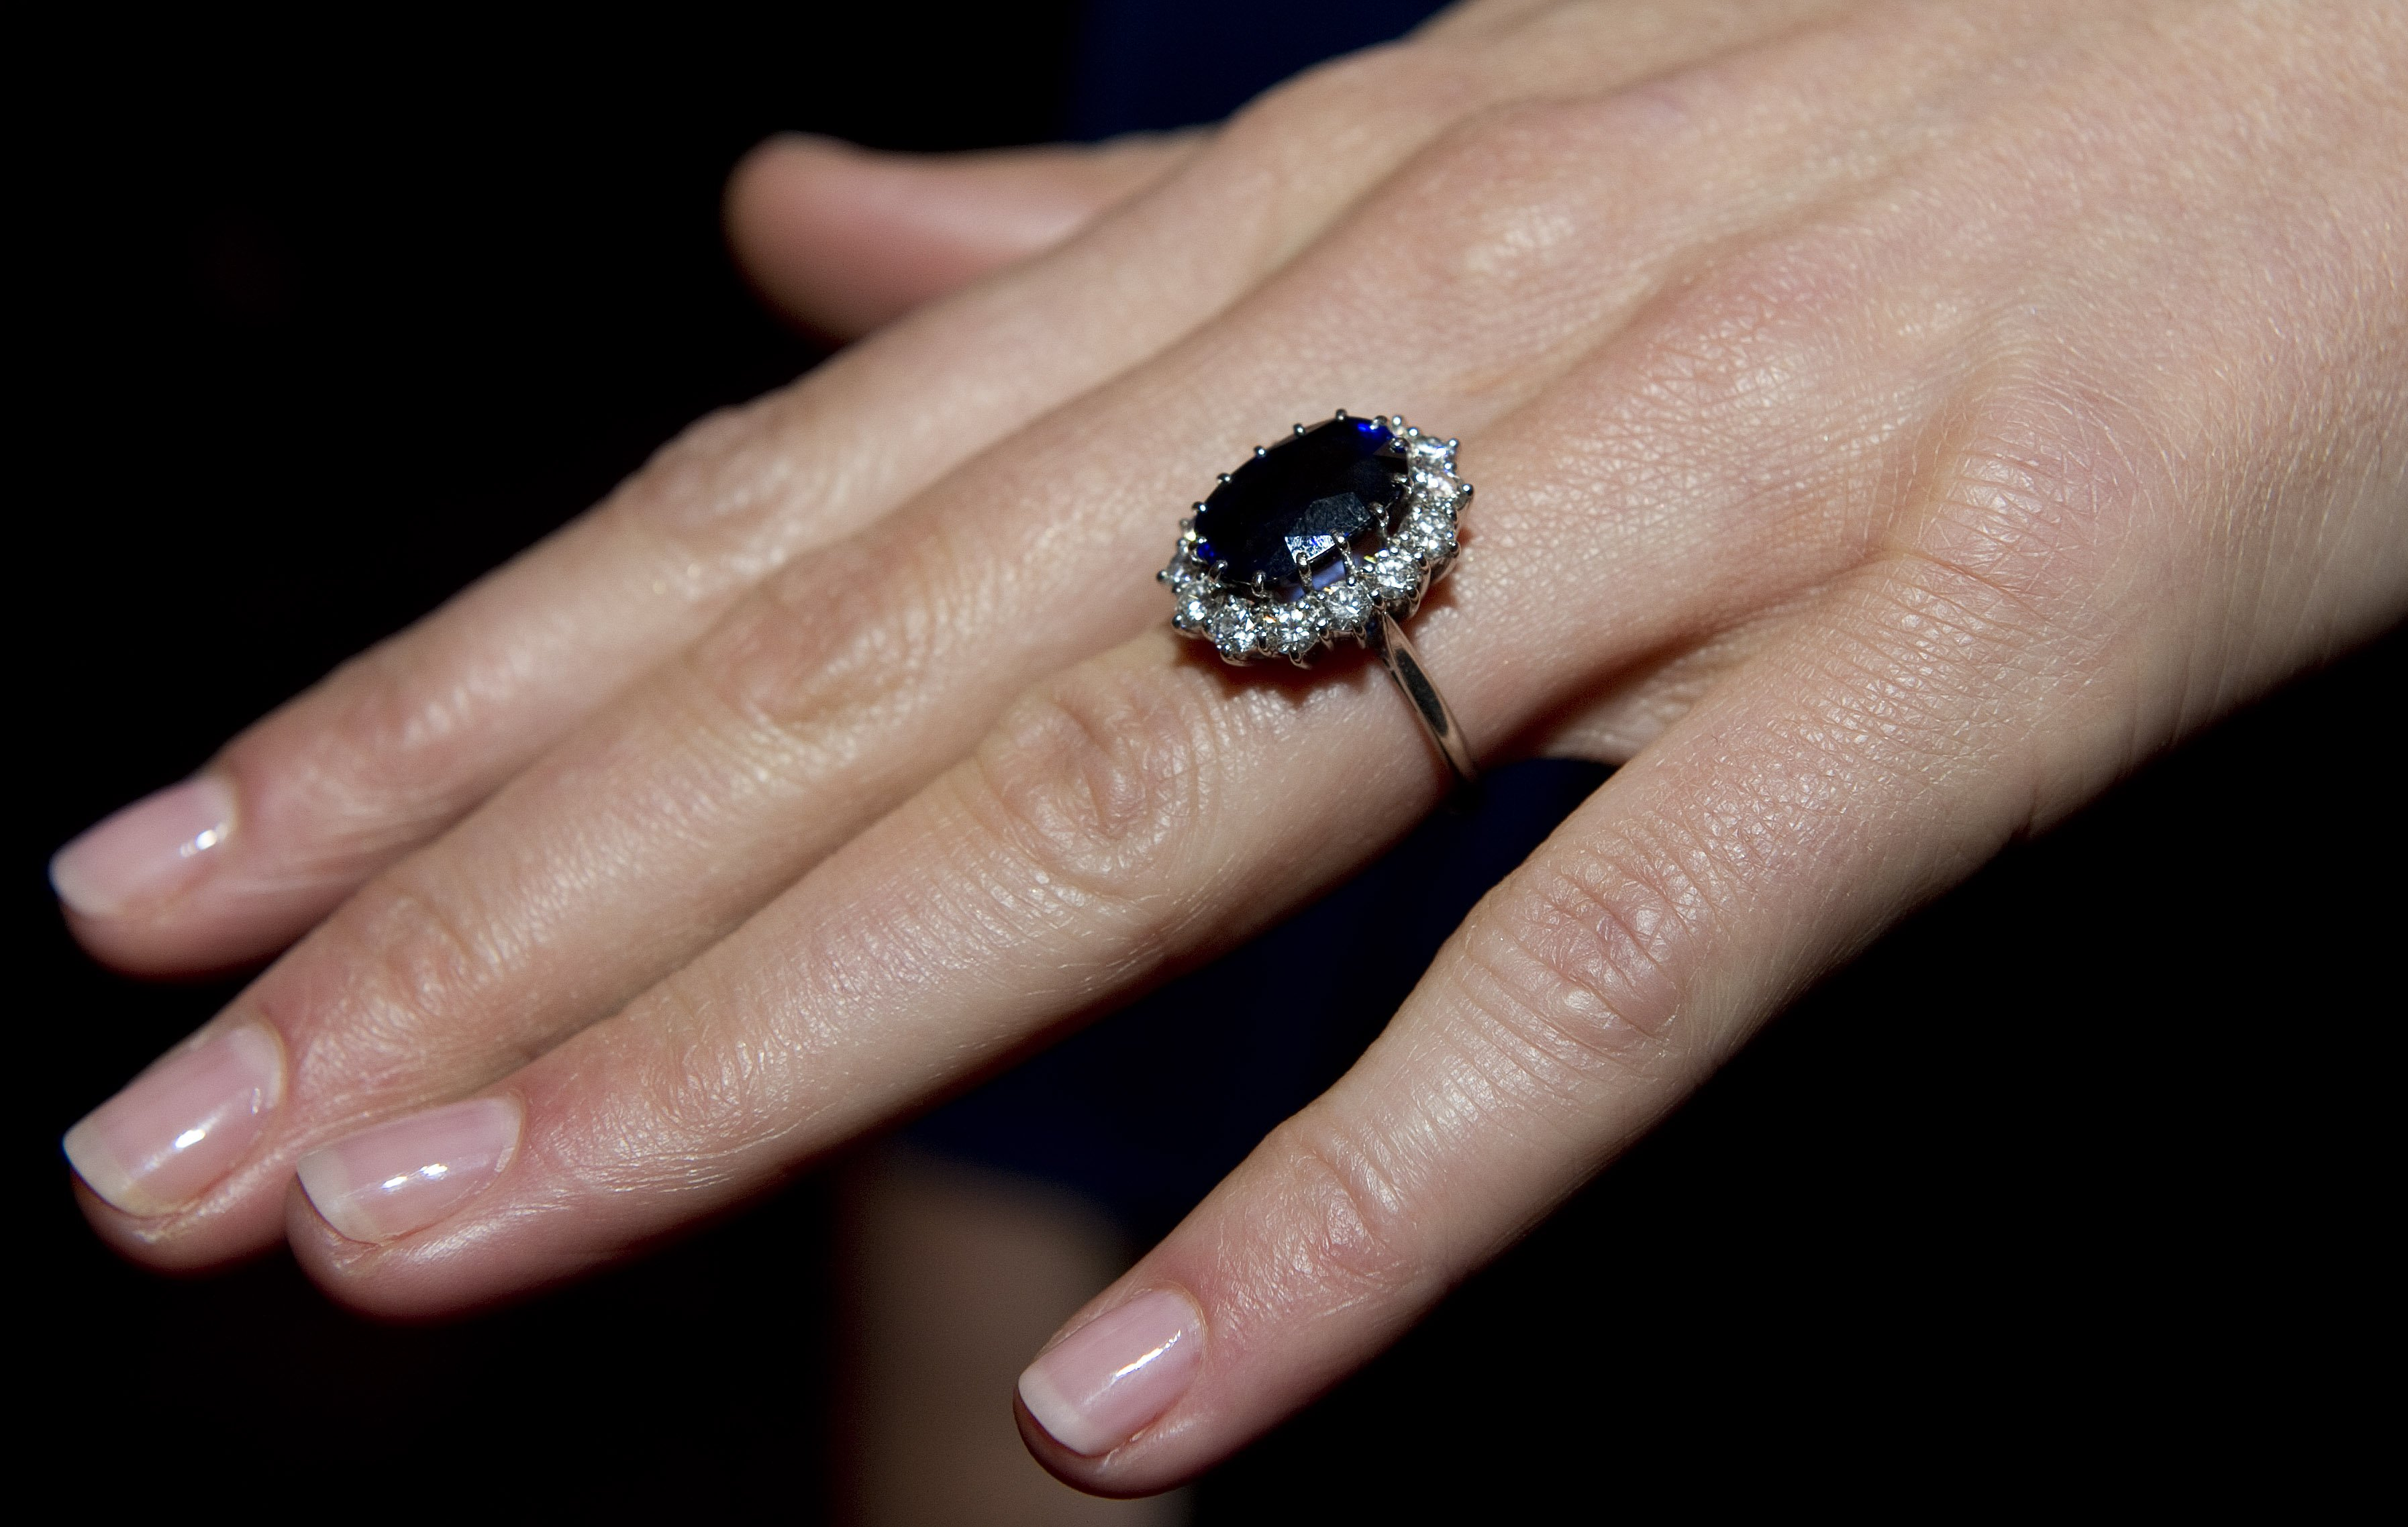 Image Credits: Getty Images | Duchess of Cambridge Wears Late Princess Diana's Ring